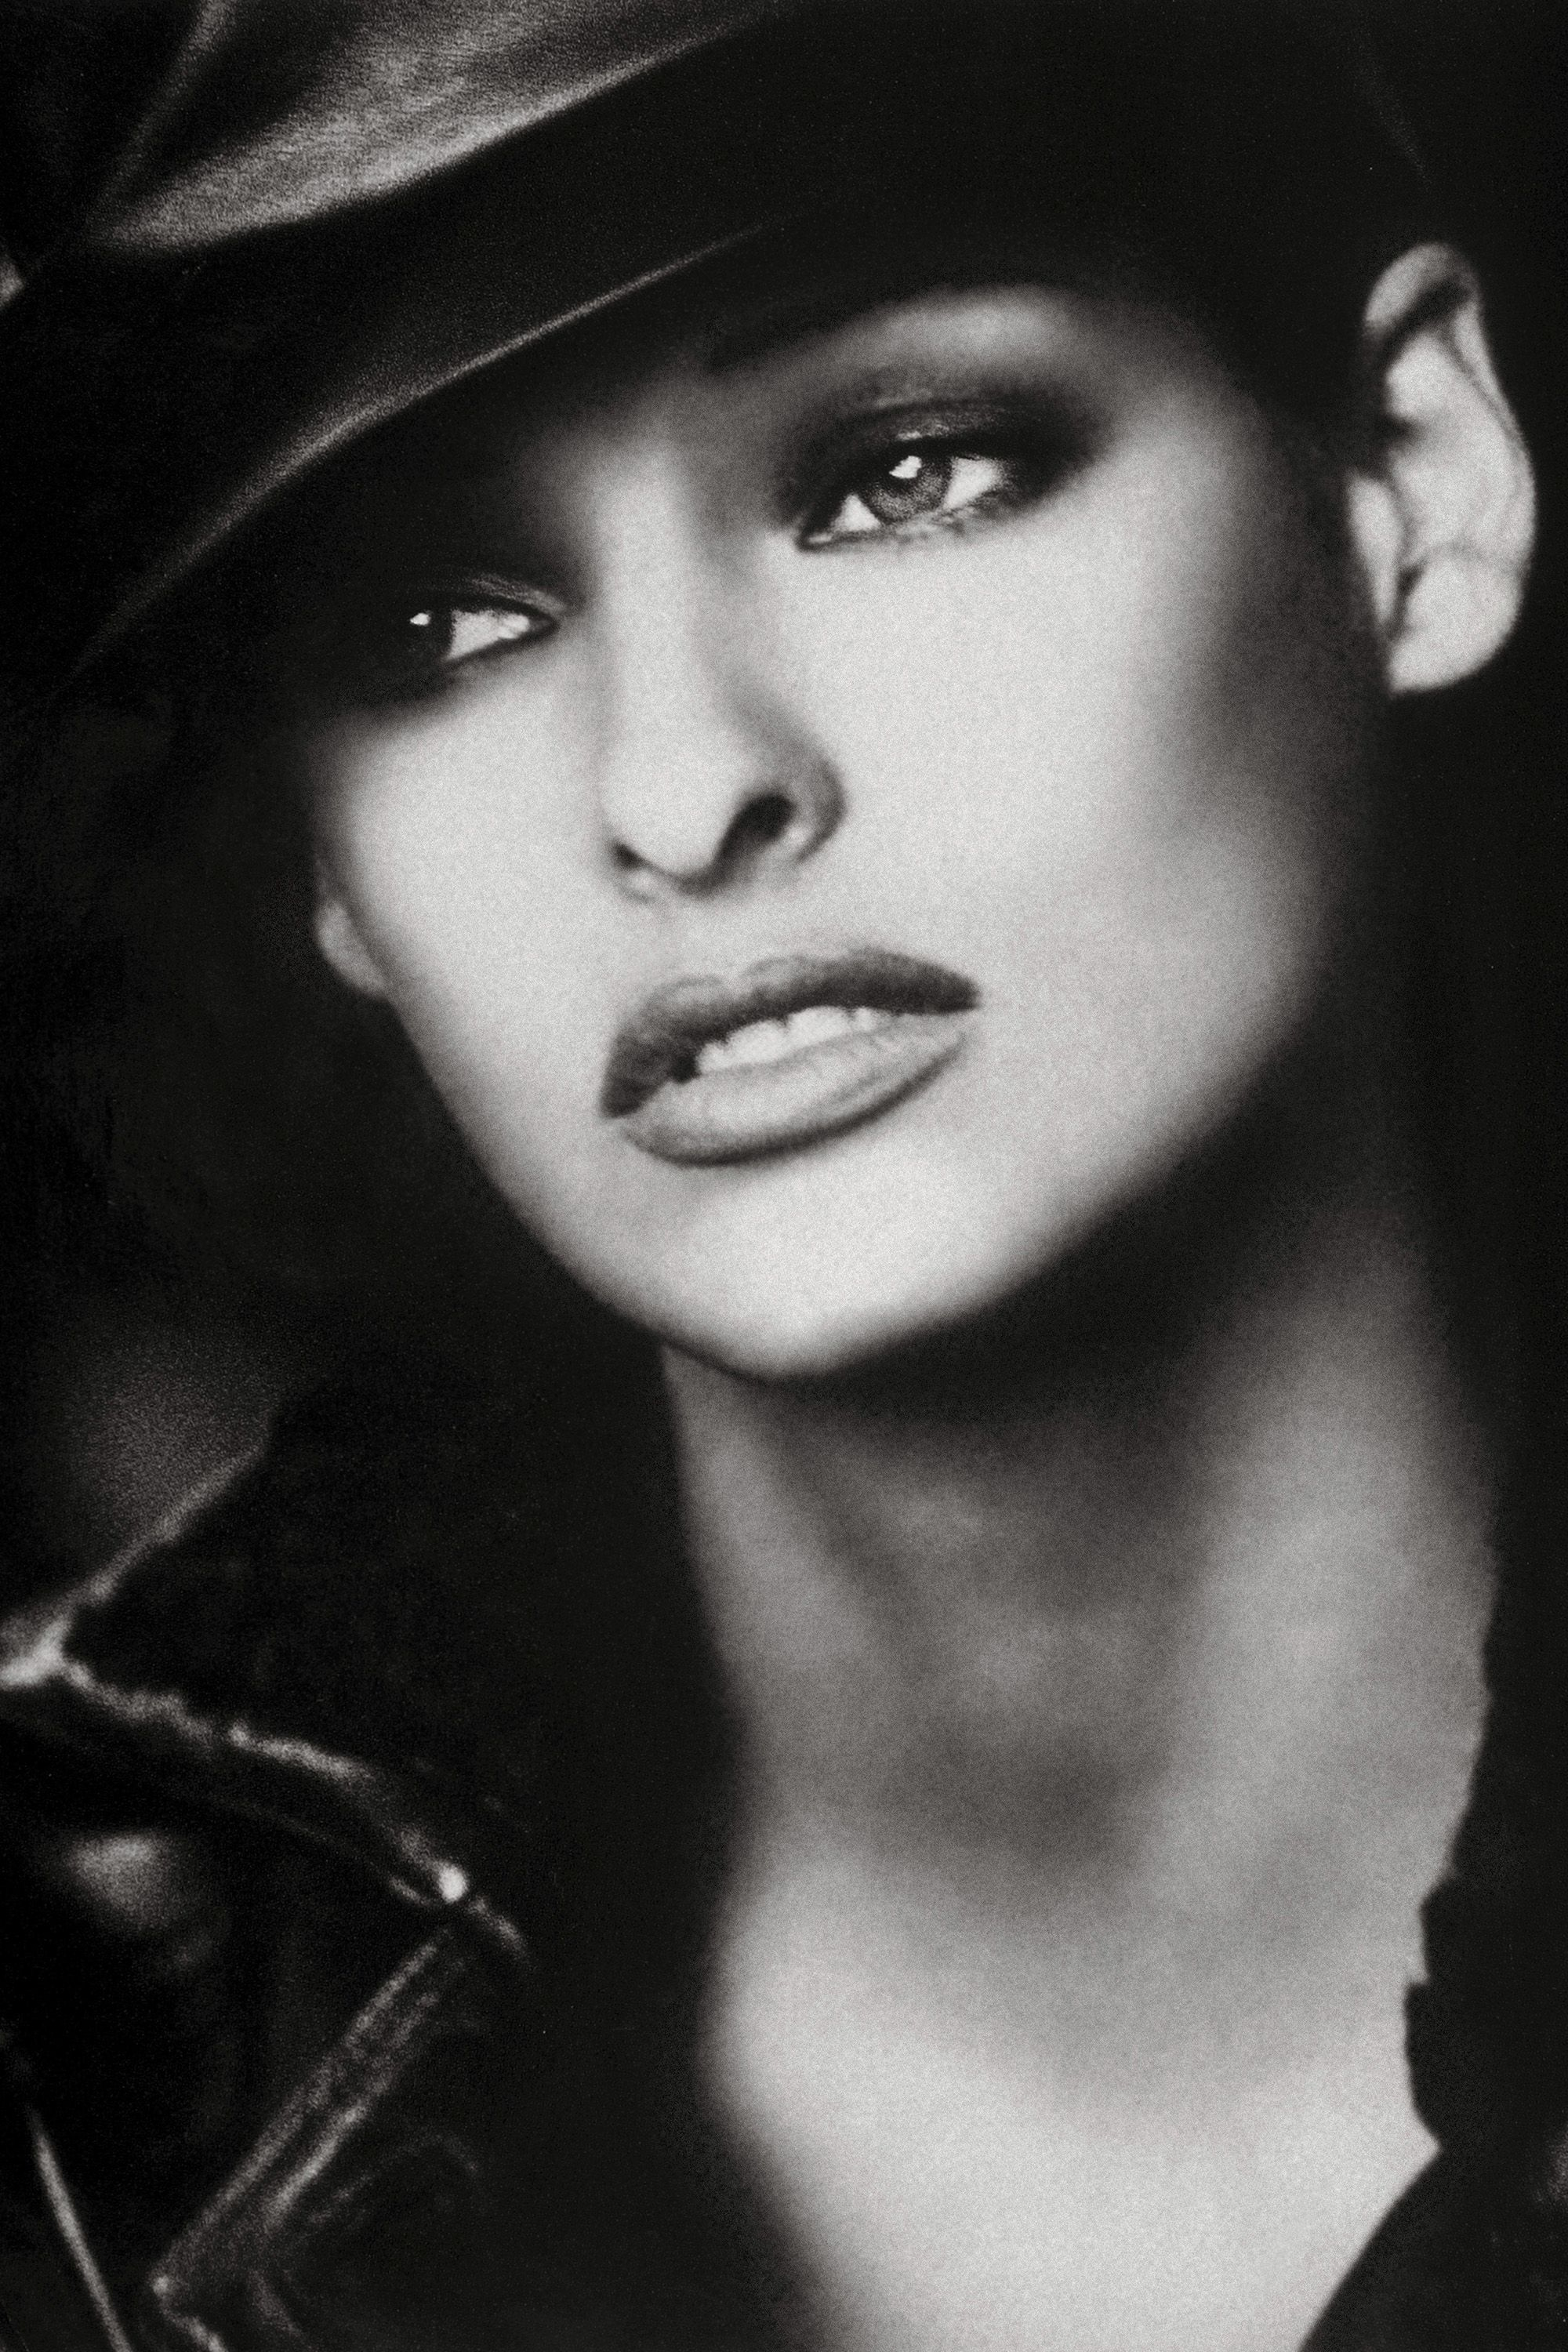 """<p><em>Photographed for the September 1992 issue by Peter Lindbergh, styled by Paul Cavaco and Tonne Goodman.</em></p><p><em></em>Fashion photographers adore working with Linda Evangelista in part because she is the industry's ultimate changeling. At one point she dyed her hair 17 times in five years. Of all the original supermodels, Linda was also the most notorious. That's due in large part to a quip she made in a 1990 interview: """"We don't wake up for less than $10,000 a day."""" Linda admits that she had her diva moments, but she was never delusional. """"I climbed the ladder very,very slowly,"""" she says. """"I remember a salon once paid me $400 to put a picture of me with a new haircut in the window, and I was ecstatic,"""" she adds. """"I never dreamed as high as the cover of <em>Bazaar.</em><span class=""""redactor-invisible-space"""">"""" </span></p>"""